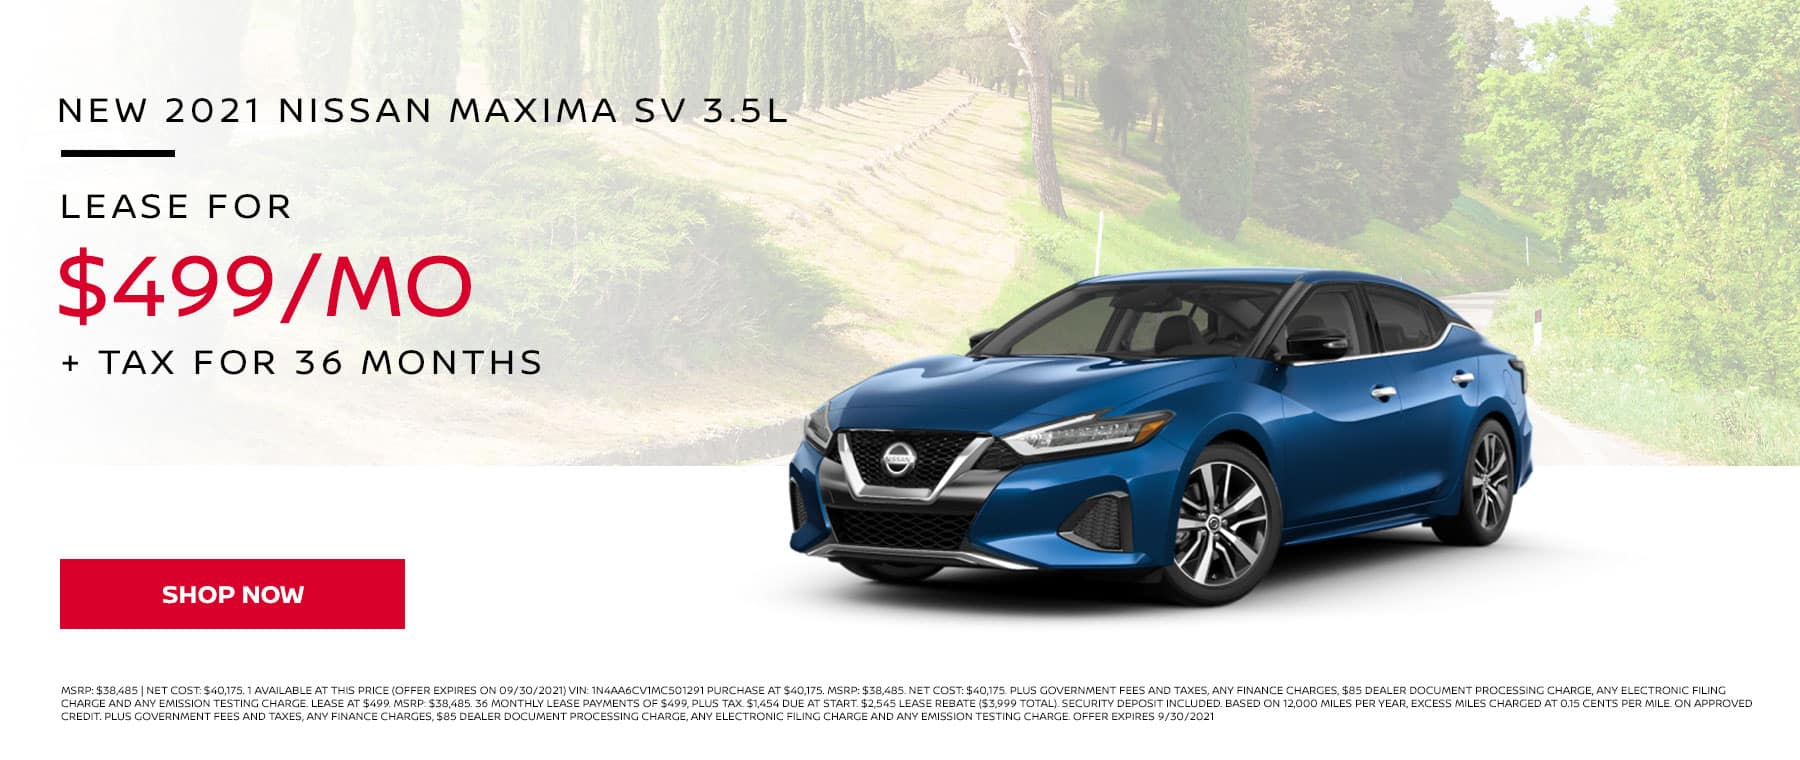 New 2021 Nissan Maxima SV 3.5L, Lease for $499 per Month + Tax for 36 months